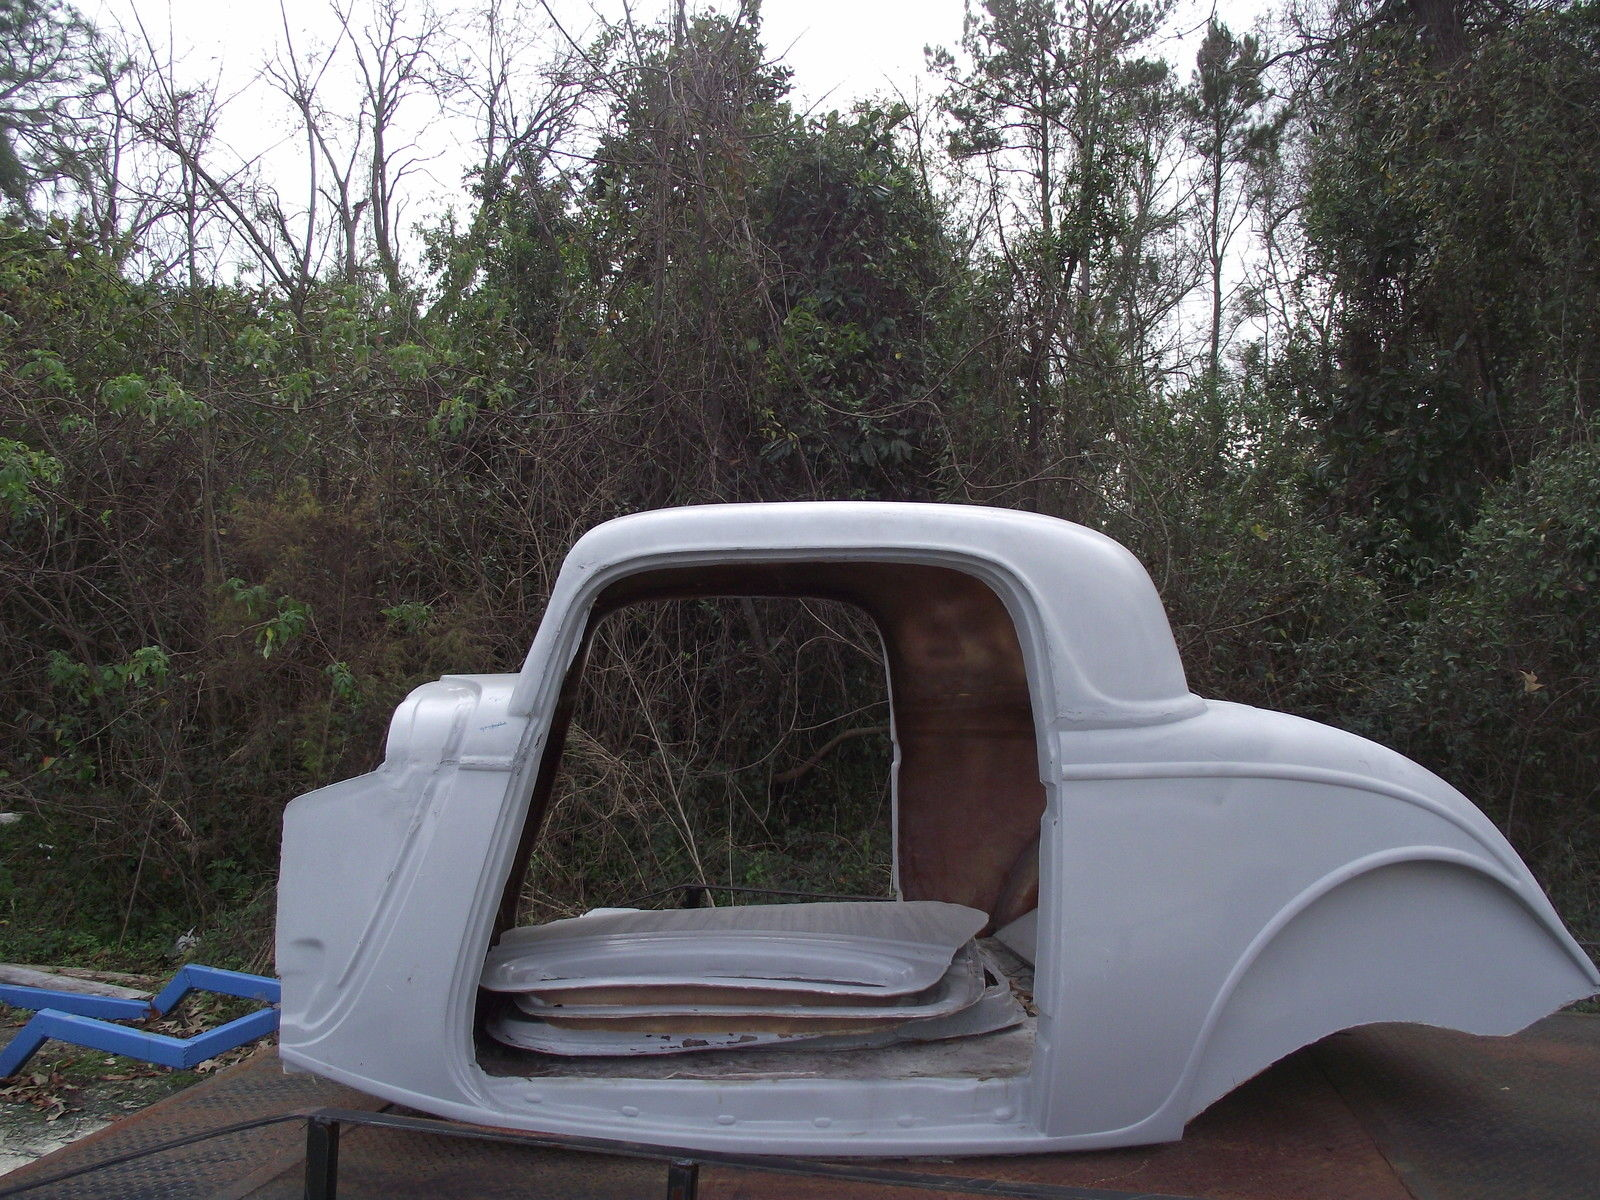 1934 ford 3 window 2 chop coupe fiberglass replica body